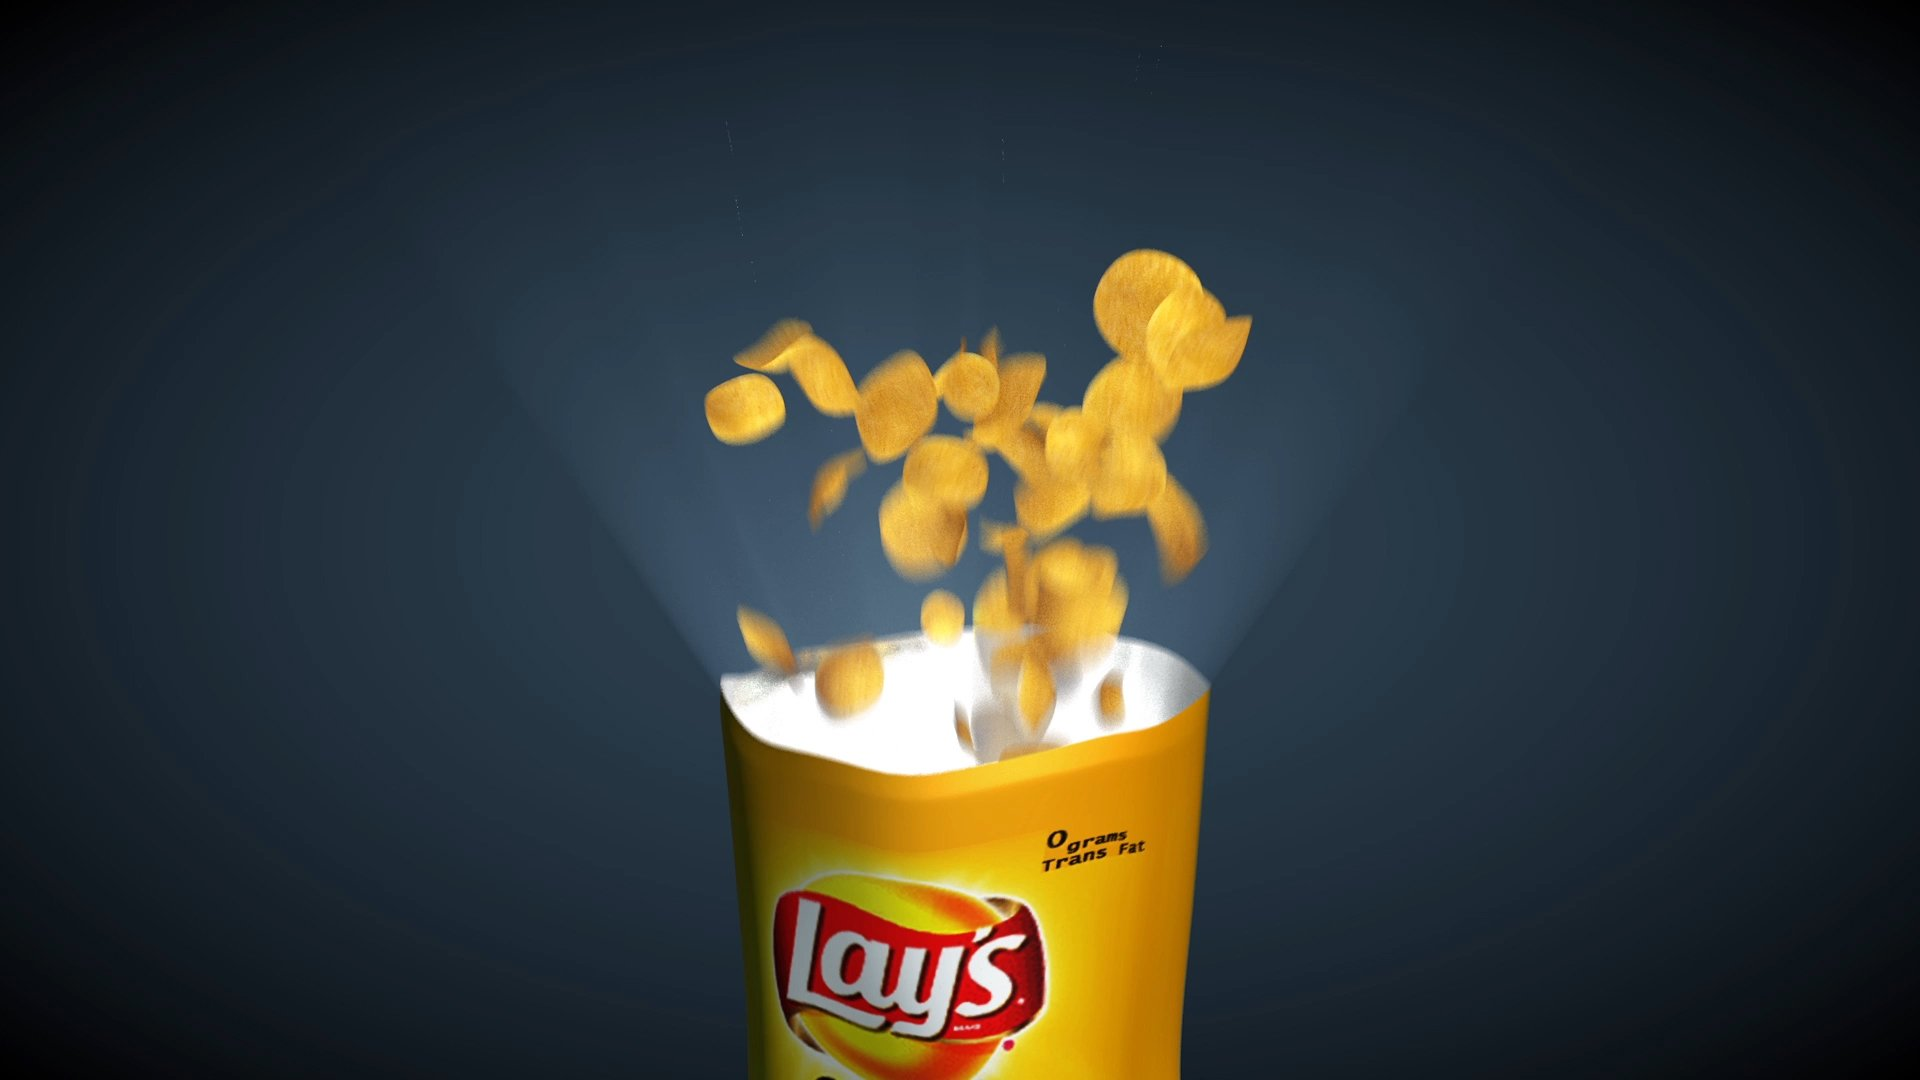 How to model and animate potato chip bag in Cinema 4D - Part